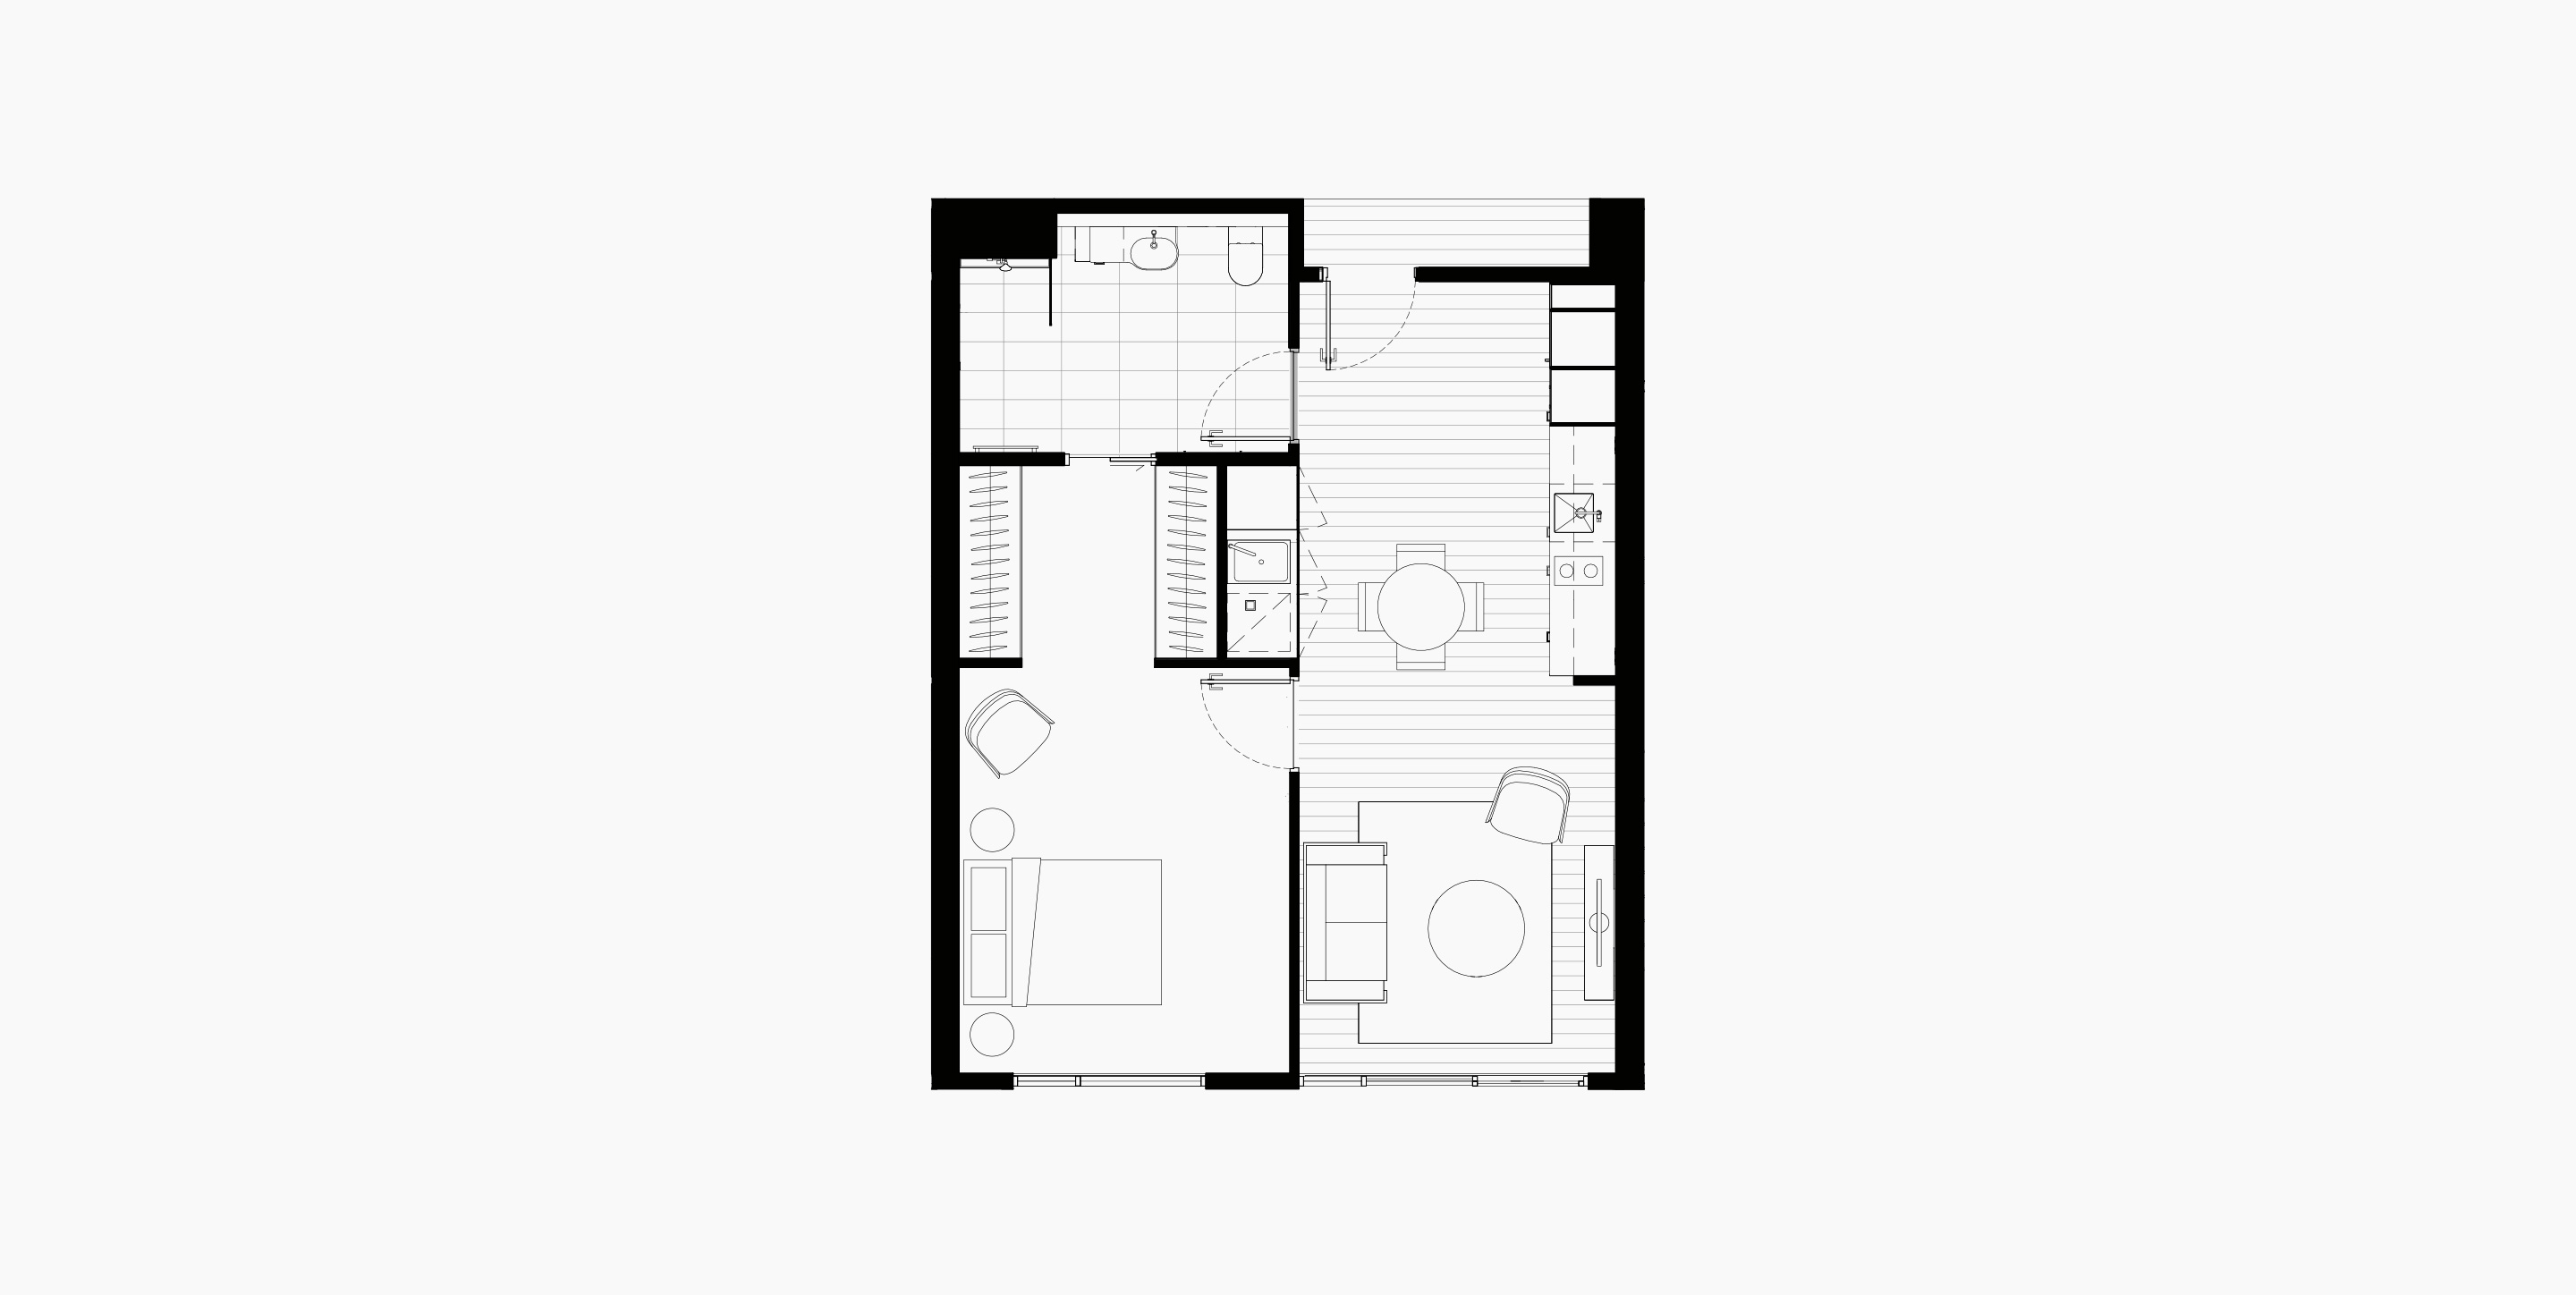 Floorplan - One bedroom, Life Care Gaynes Park Suites